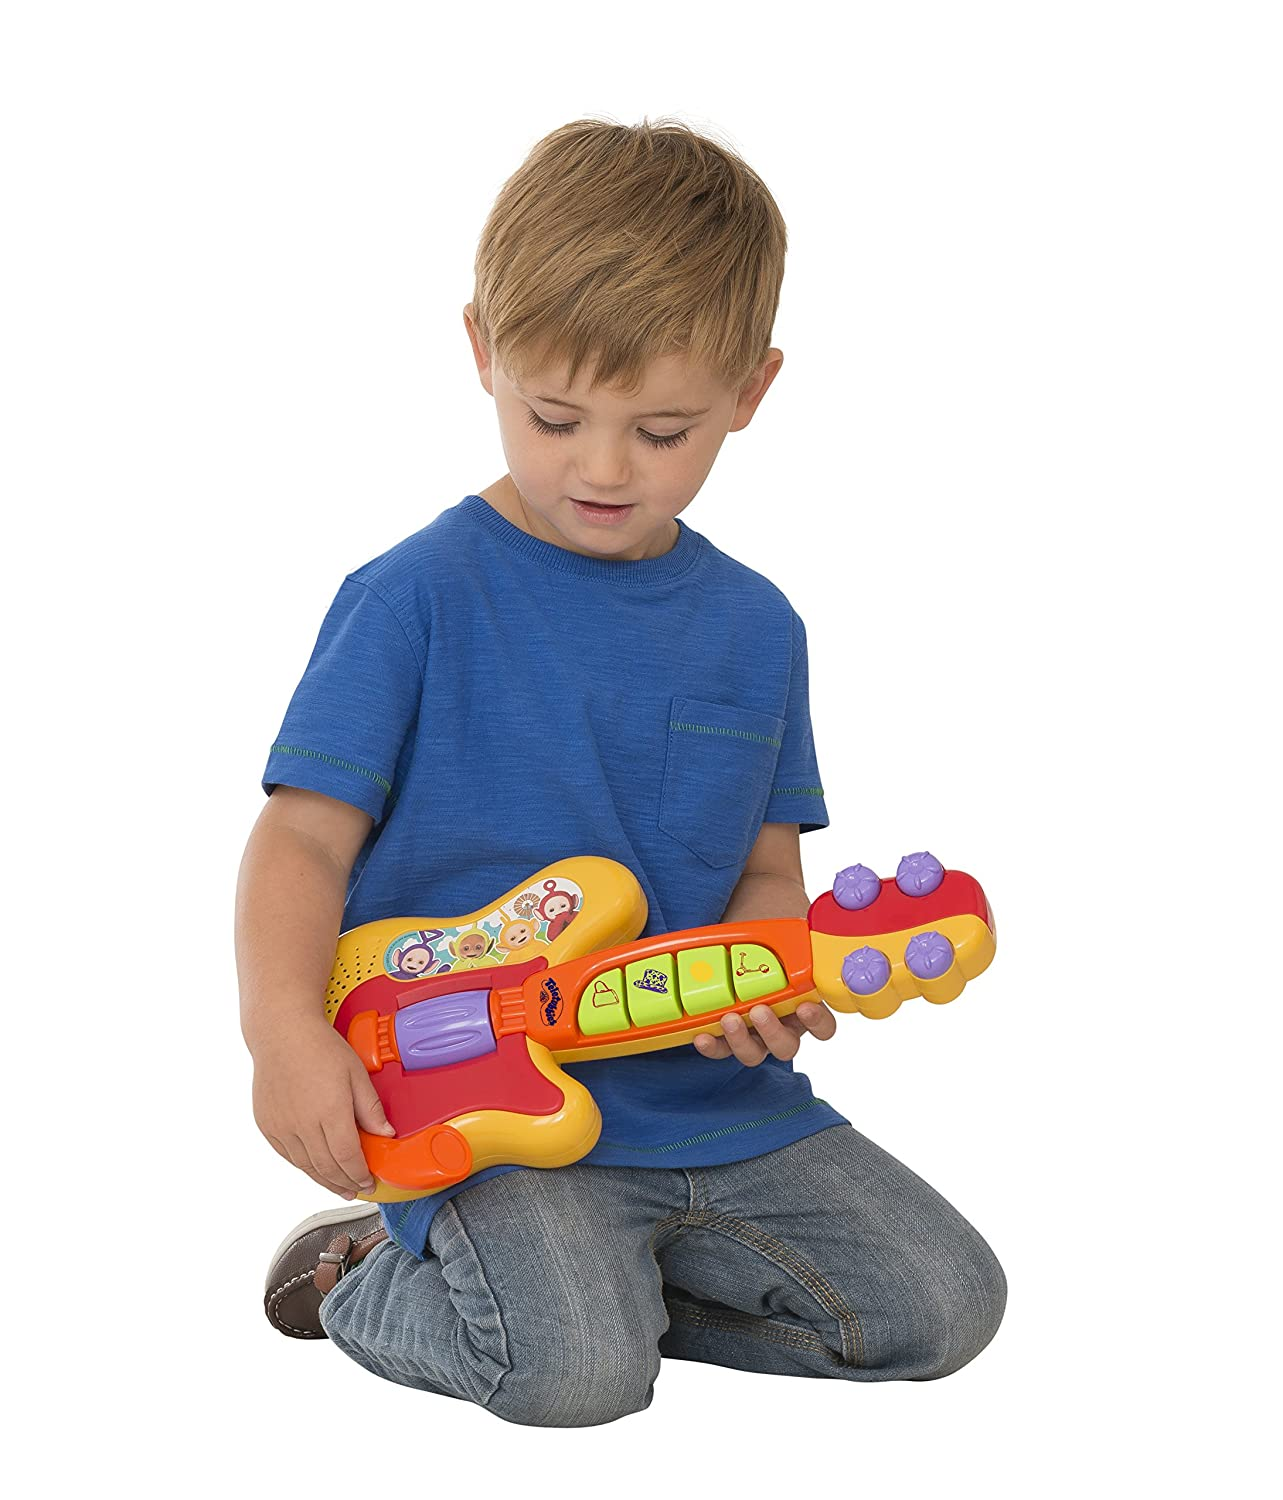 Teletubbies Guitar Toy Amazon Toys & Games